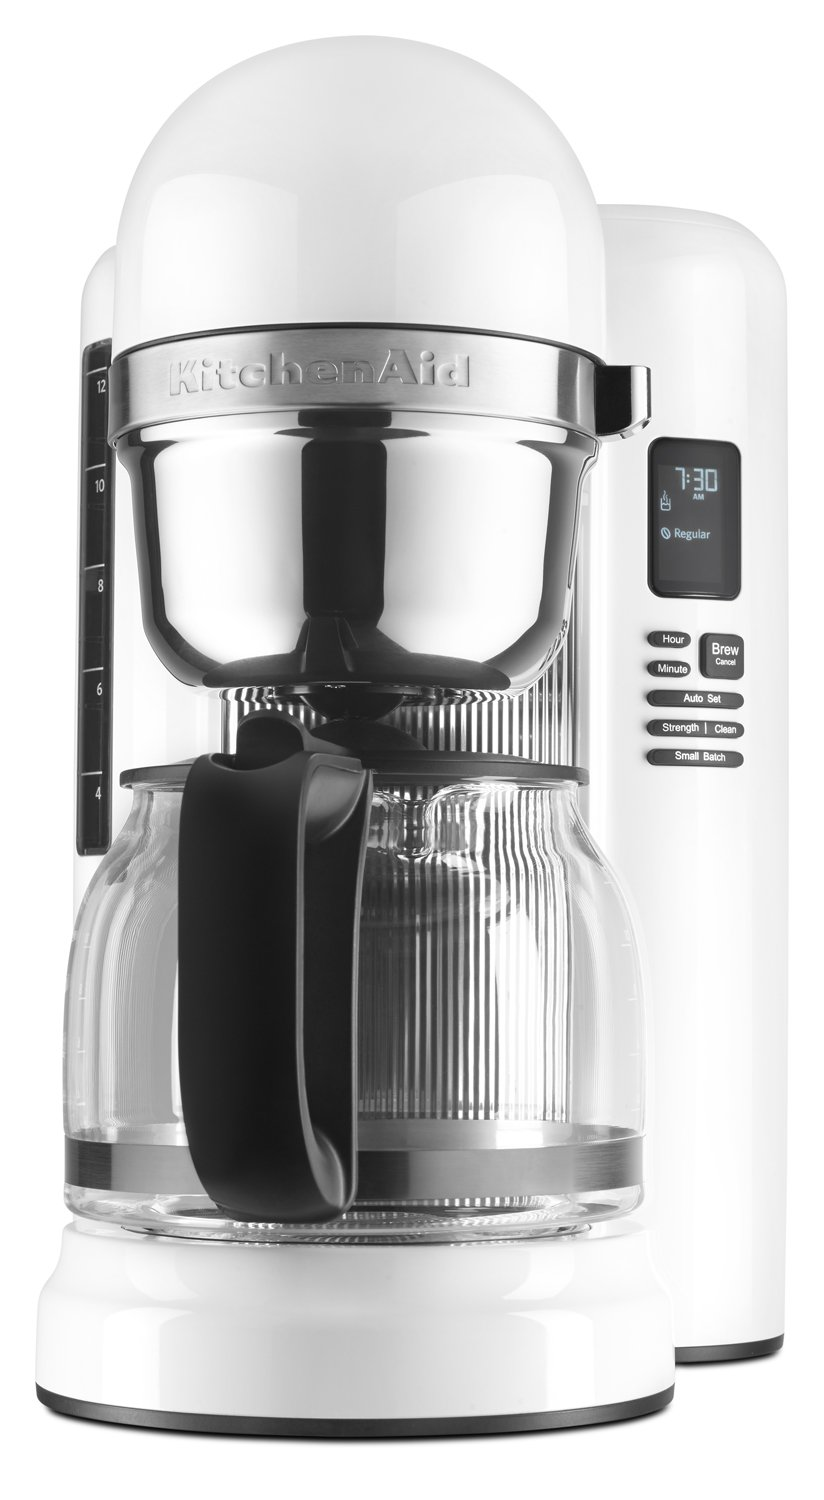 KitchenAid KCM1204WH 12-Cup Coffee Maker with One Touch Brewing - White by KitchenAid